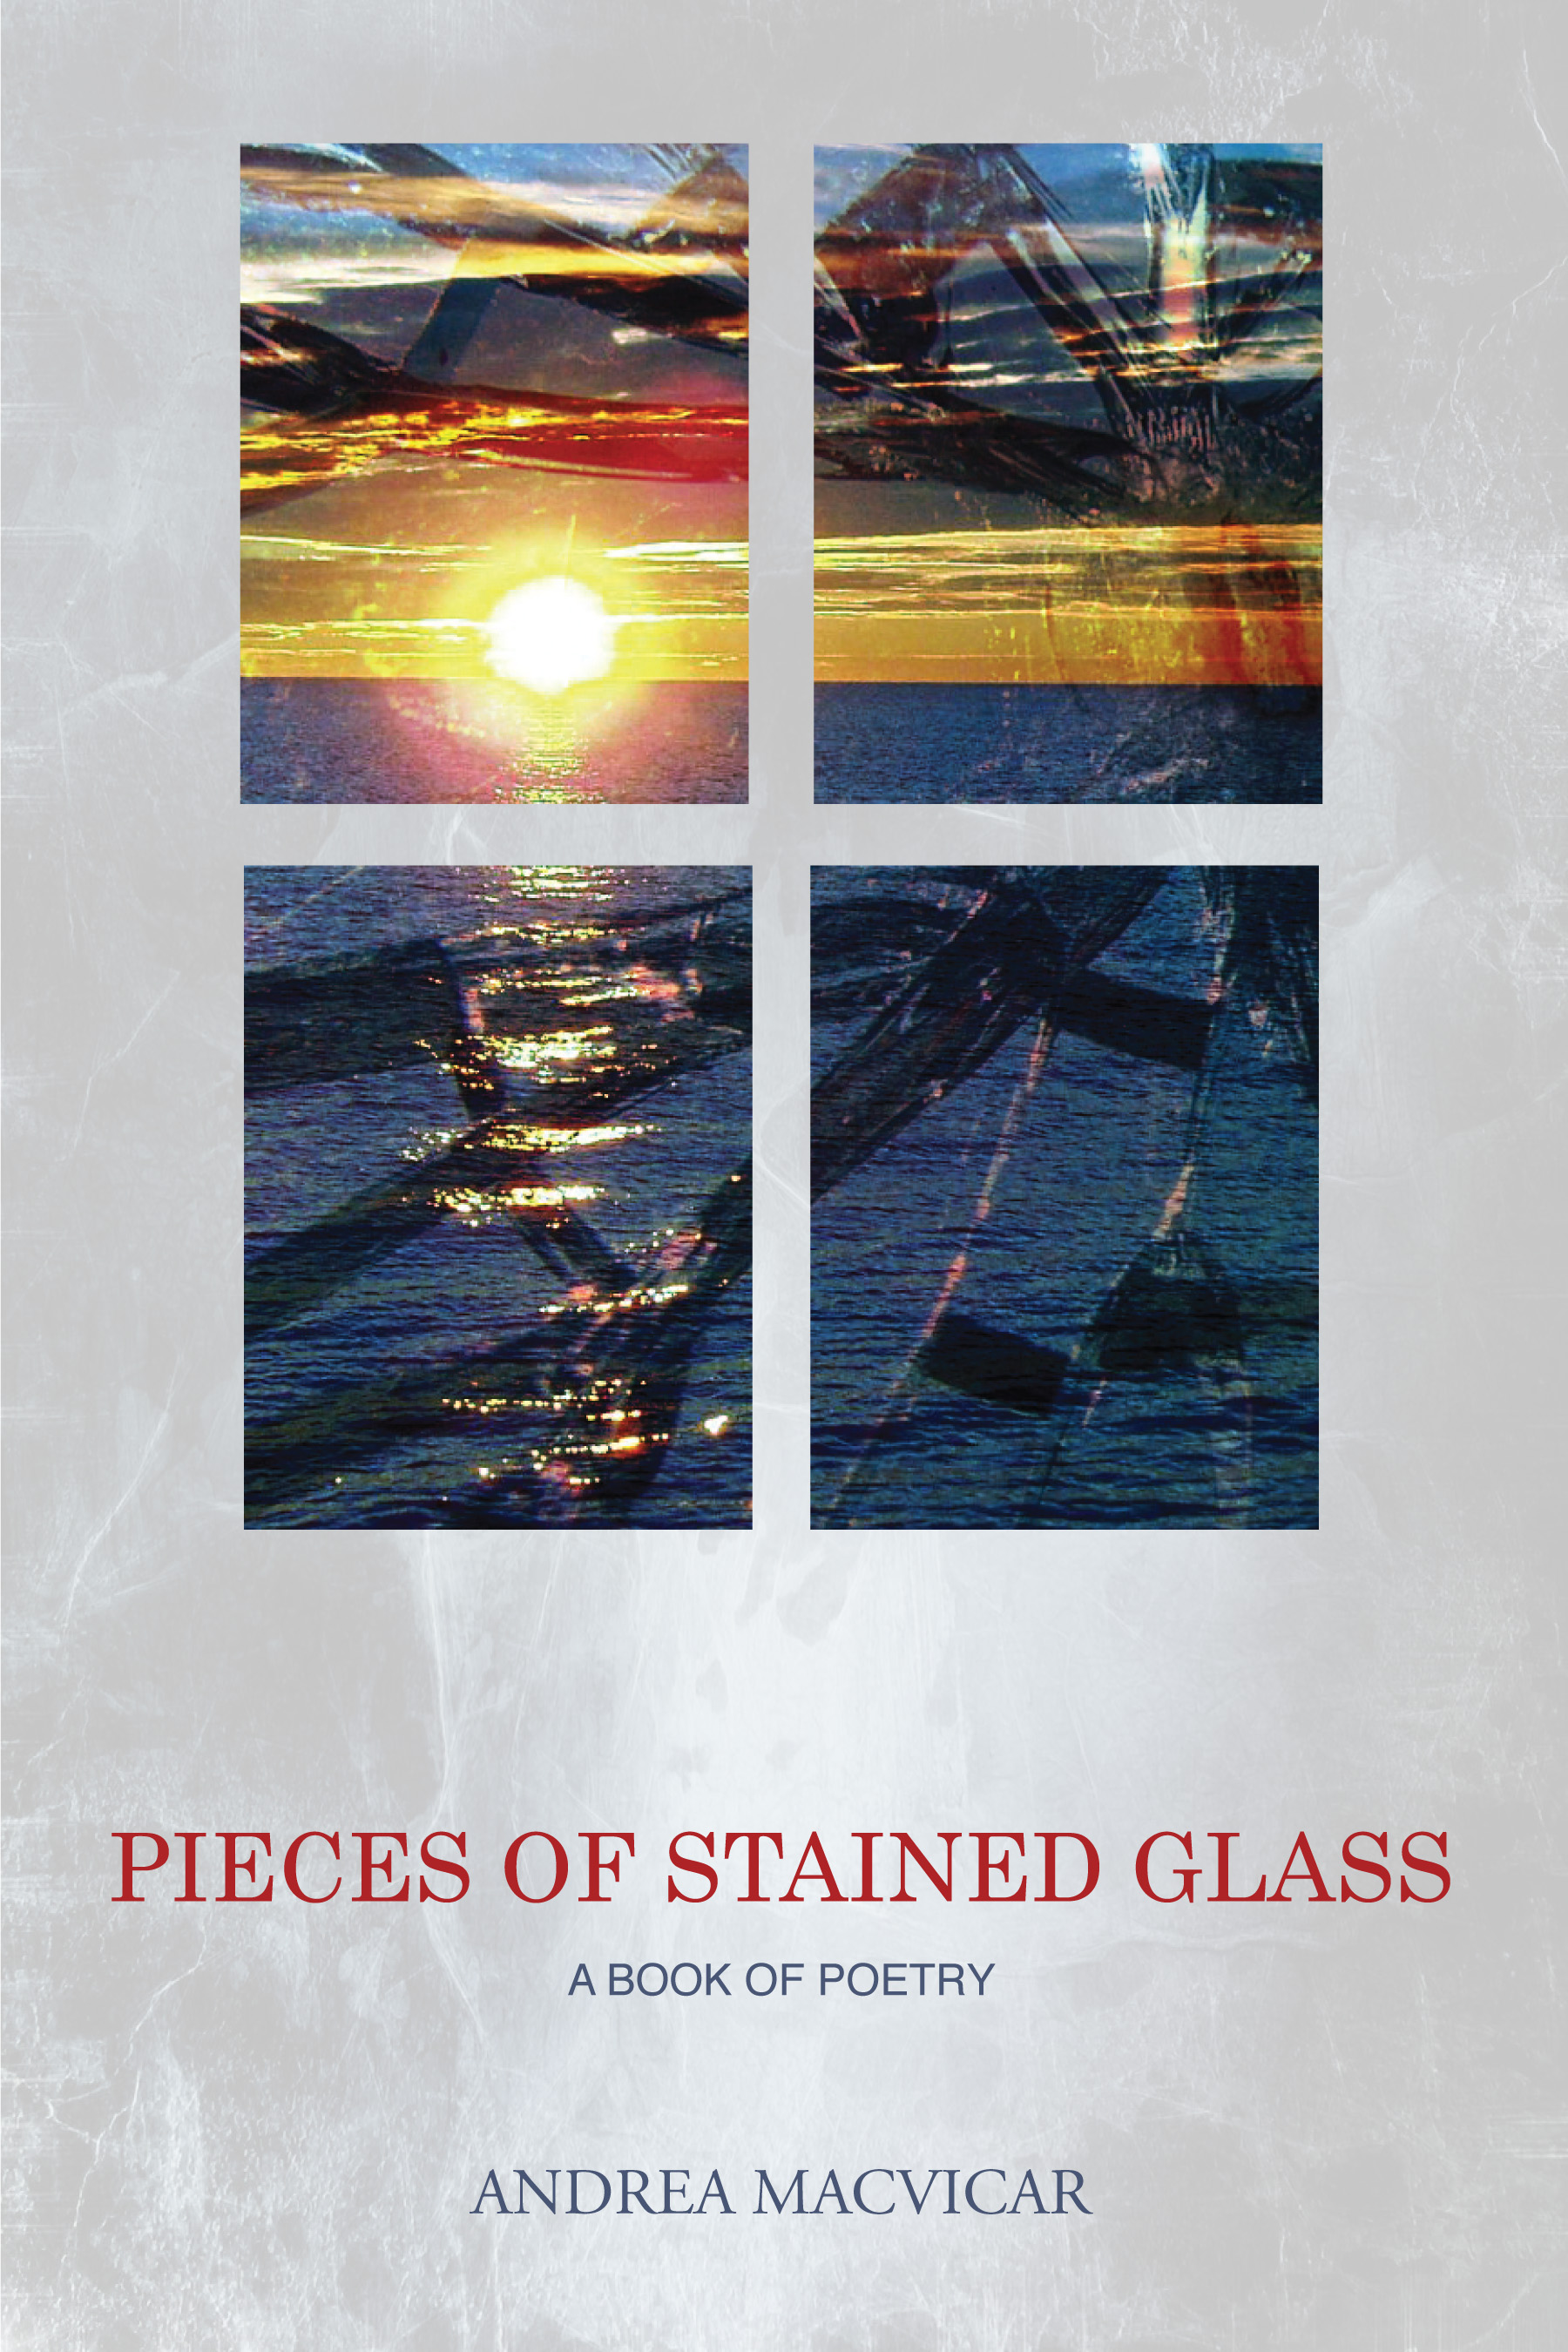 Pieces of Stained Glass